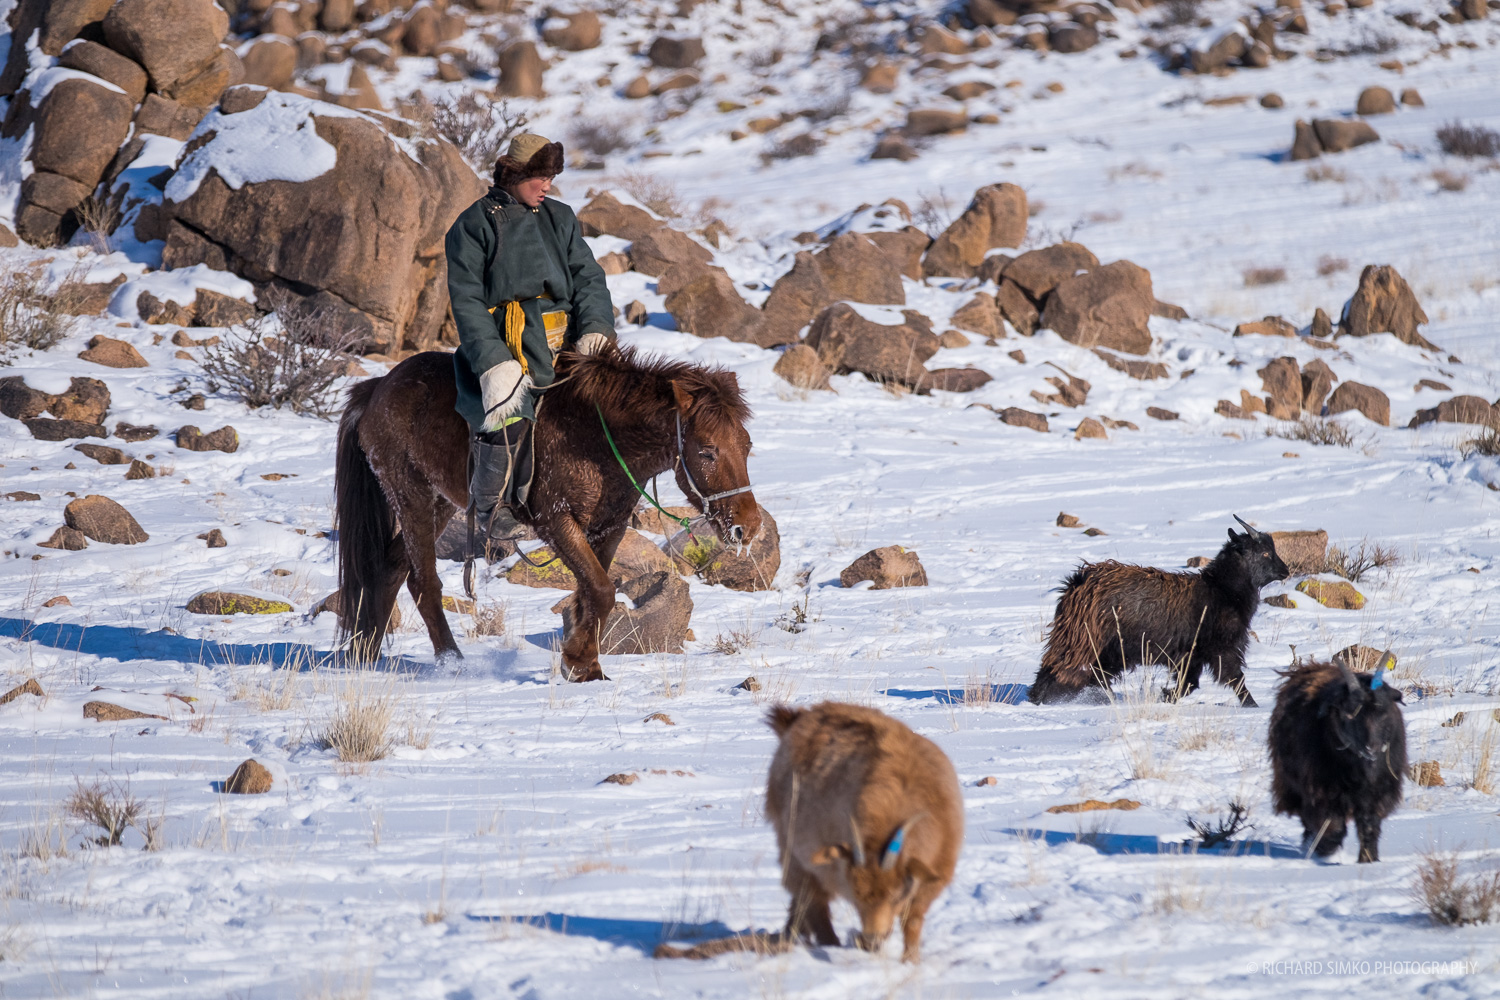 Neighbouring family did the herding traditional way, on horseback.